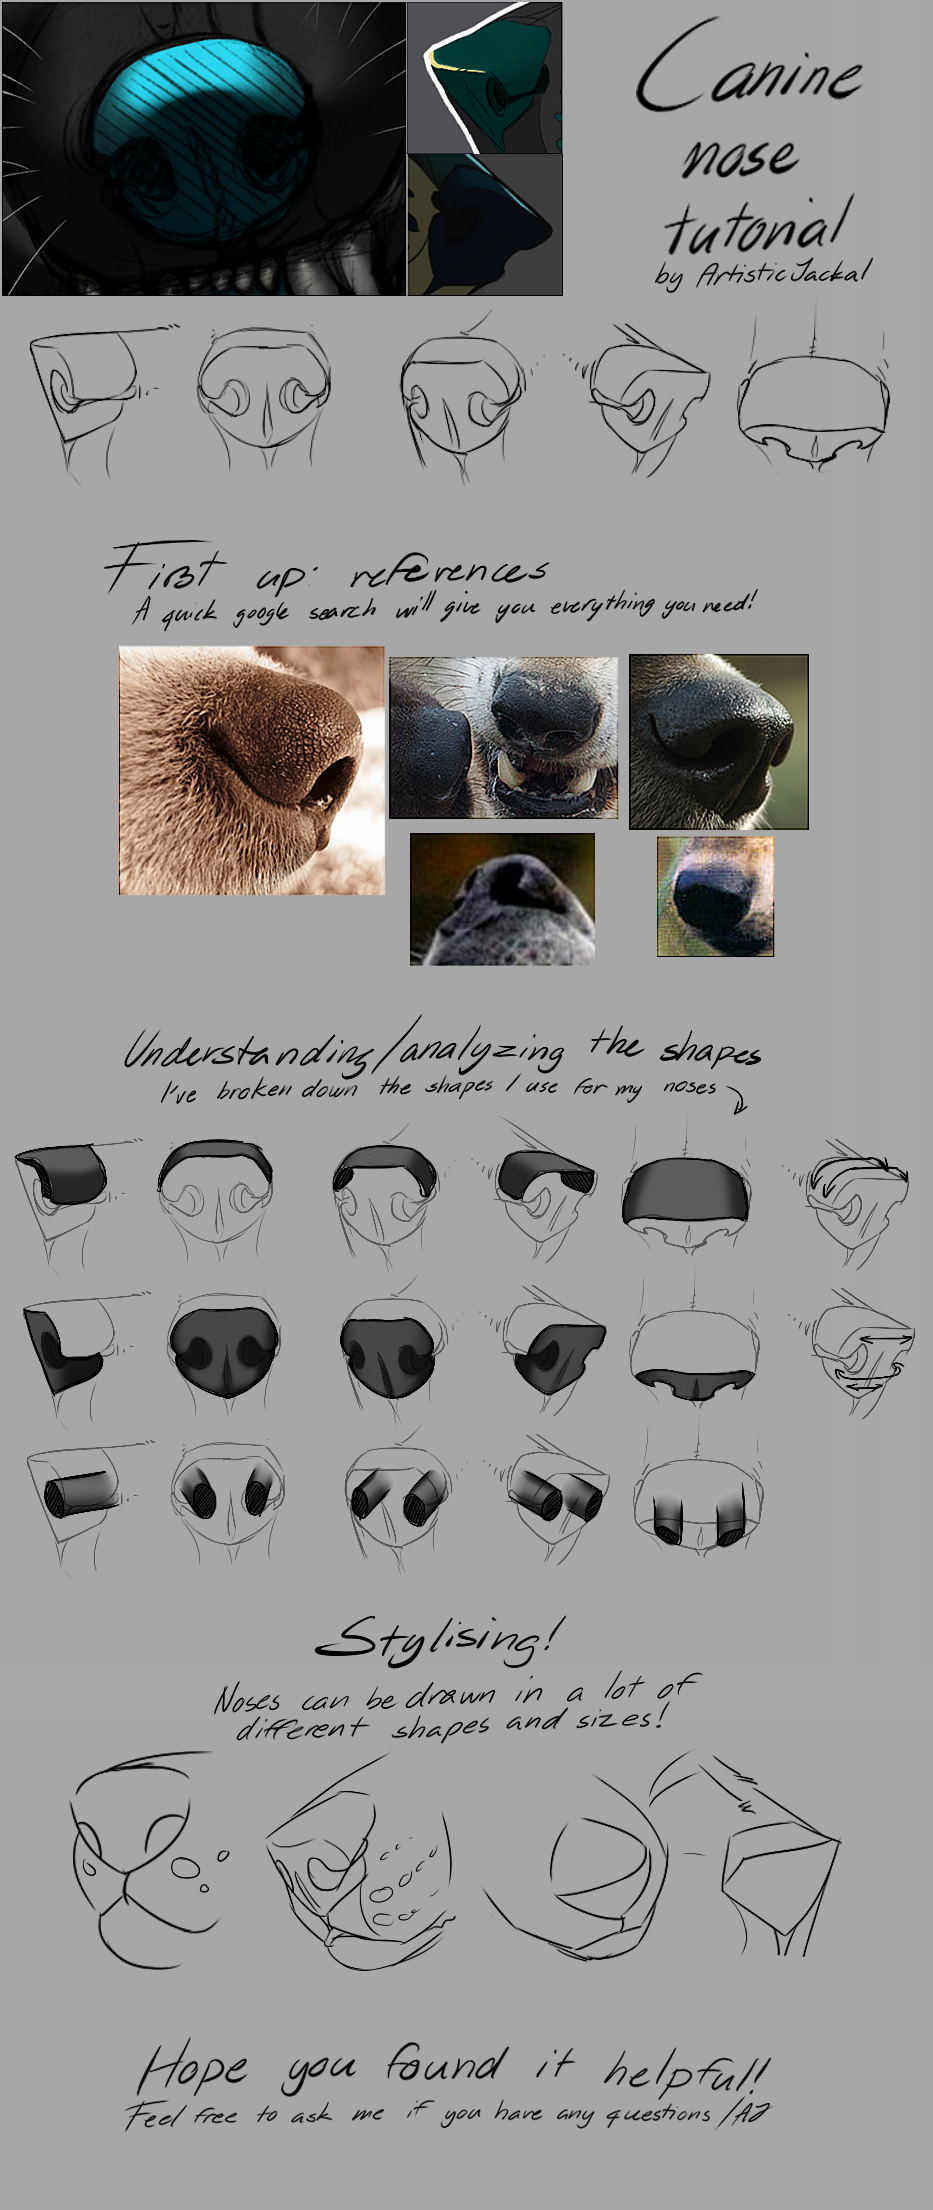 Quick canine nose tutorial by ArtisticJackal | canine anatomy & how ...